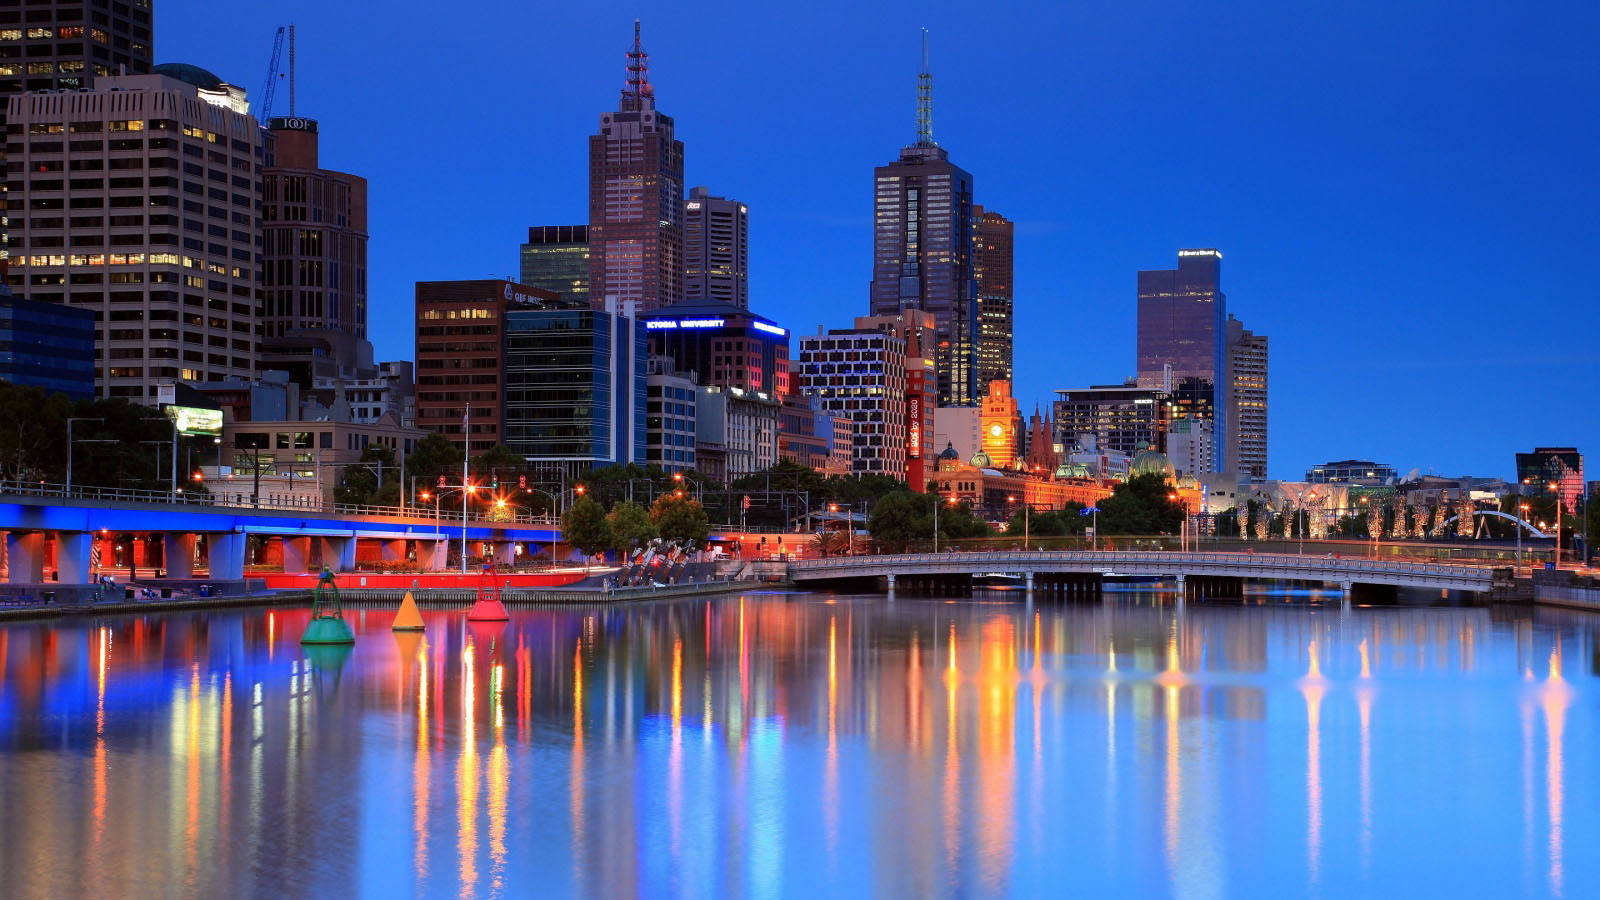 Melbourne Yarra River wallpaper